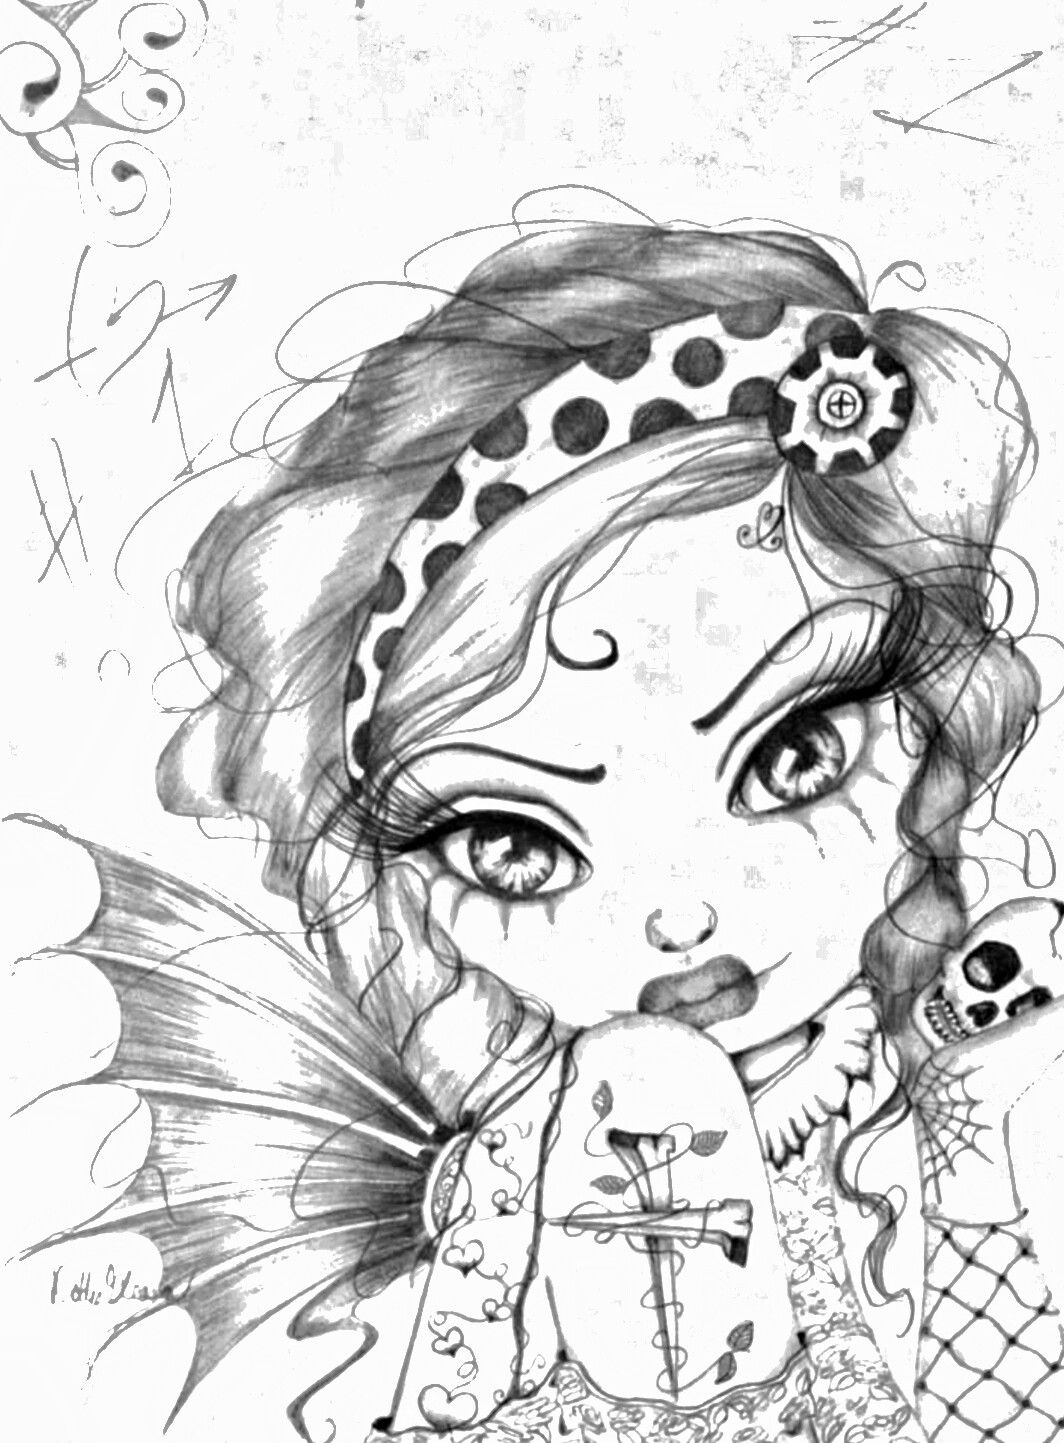 Pin by Yvonne39 on Pin pictures Big eyes art, Art, Drawings